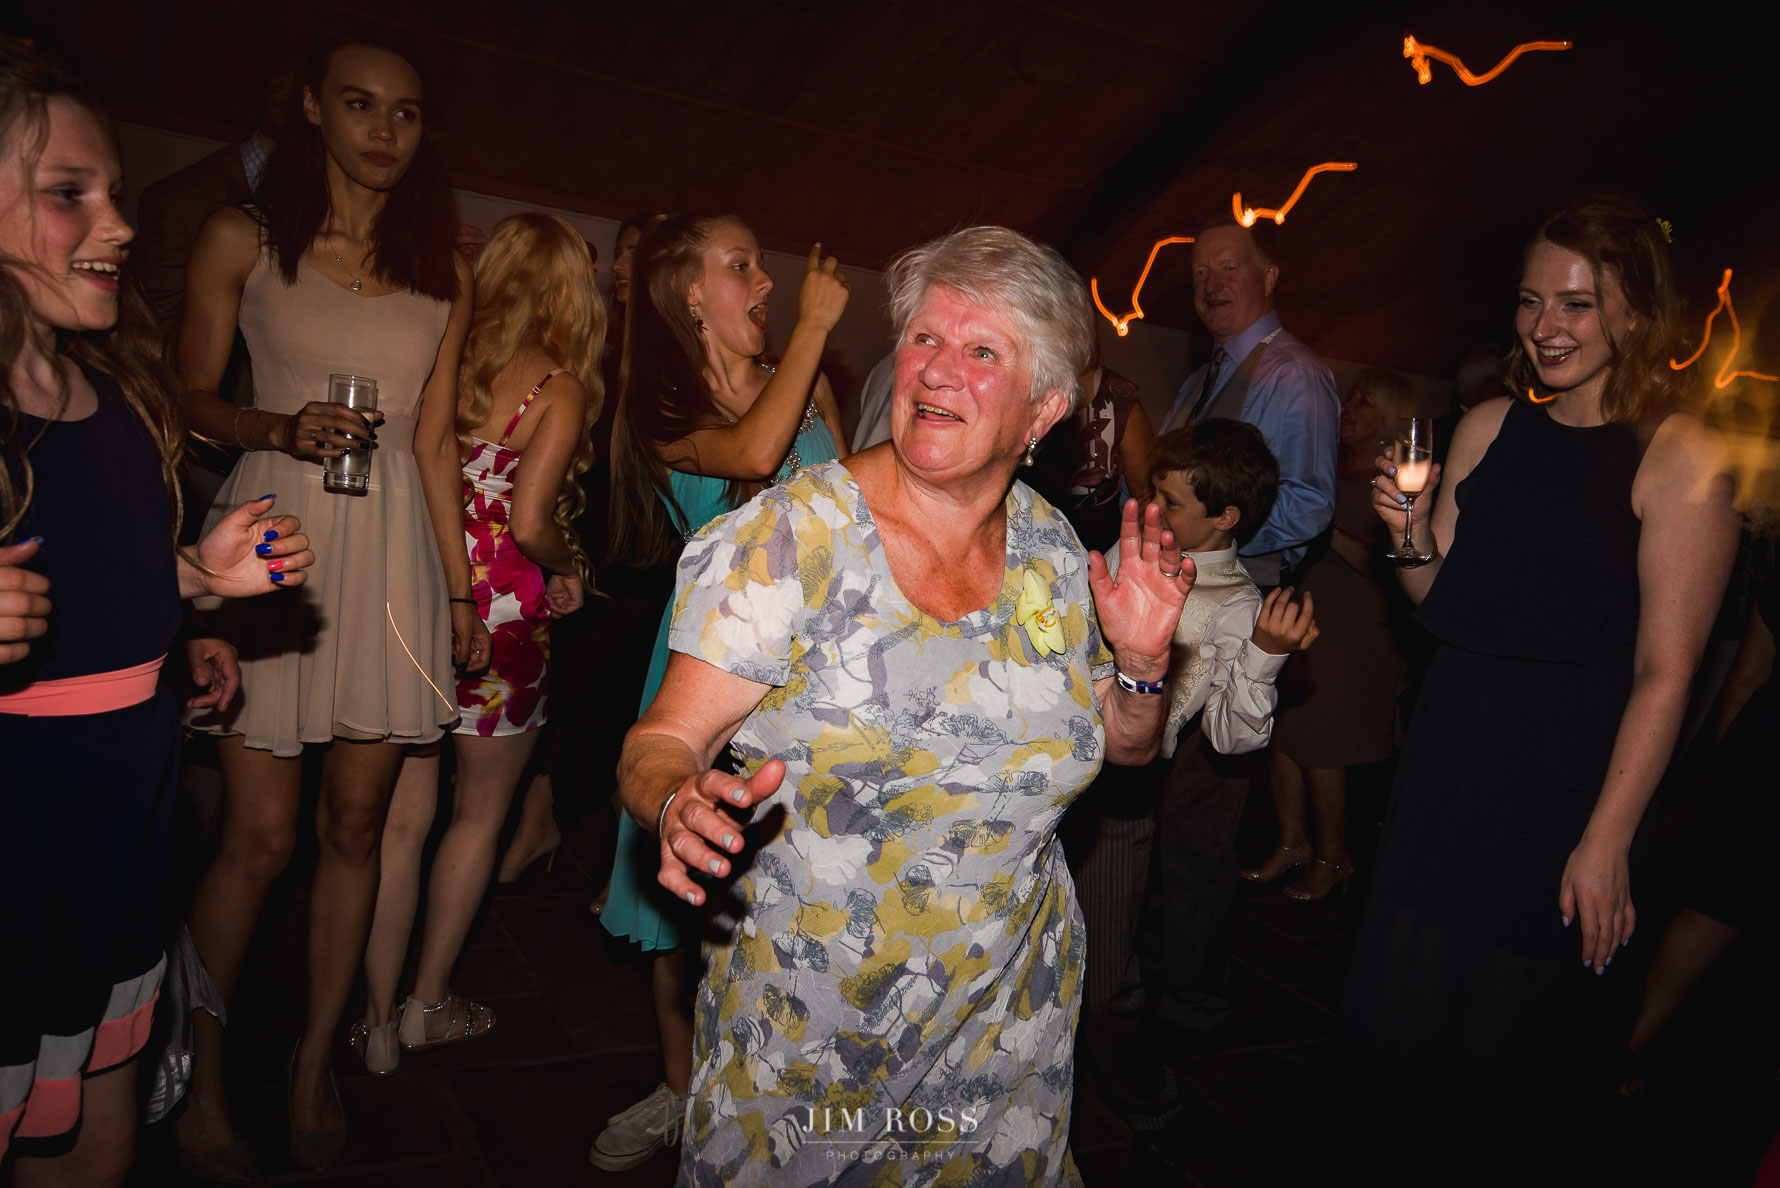 Gran getting her groove on